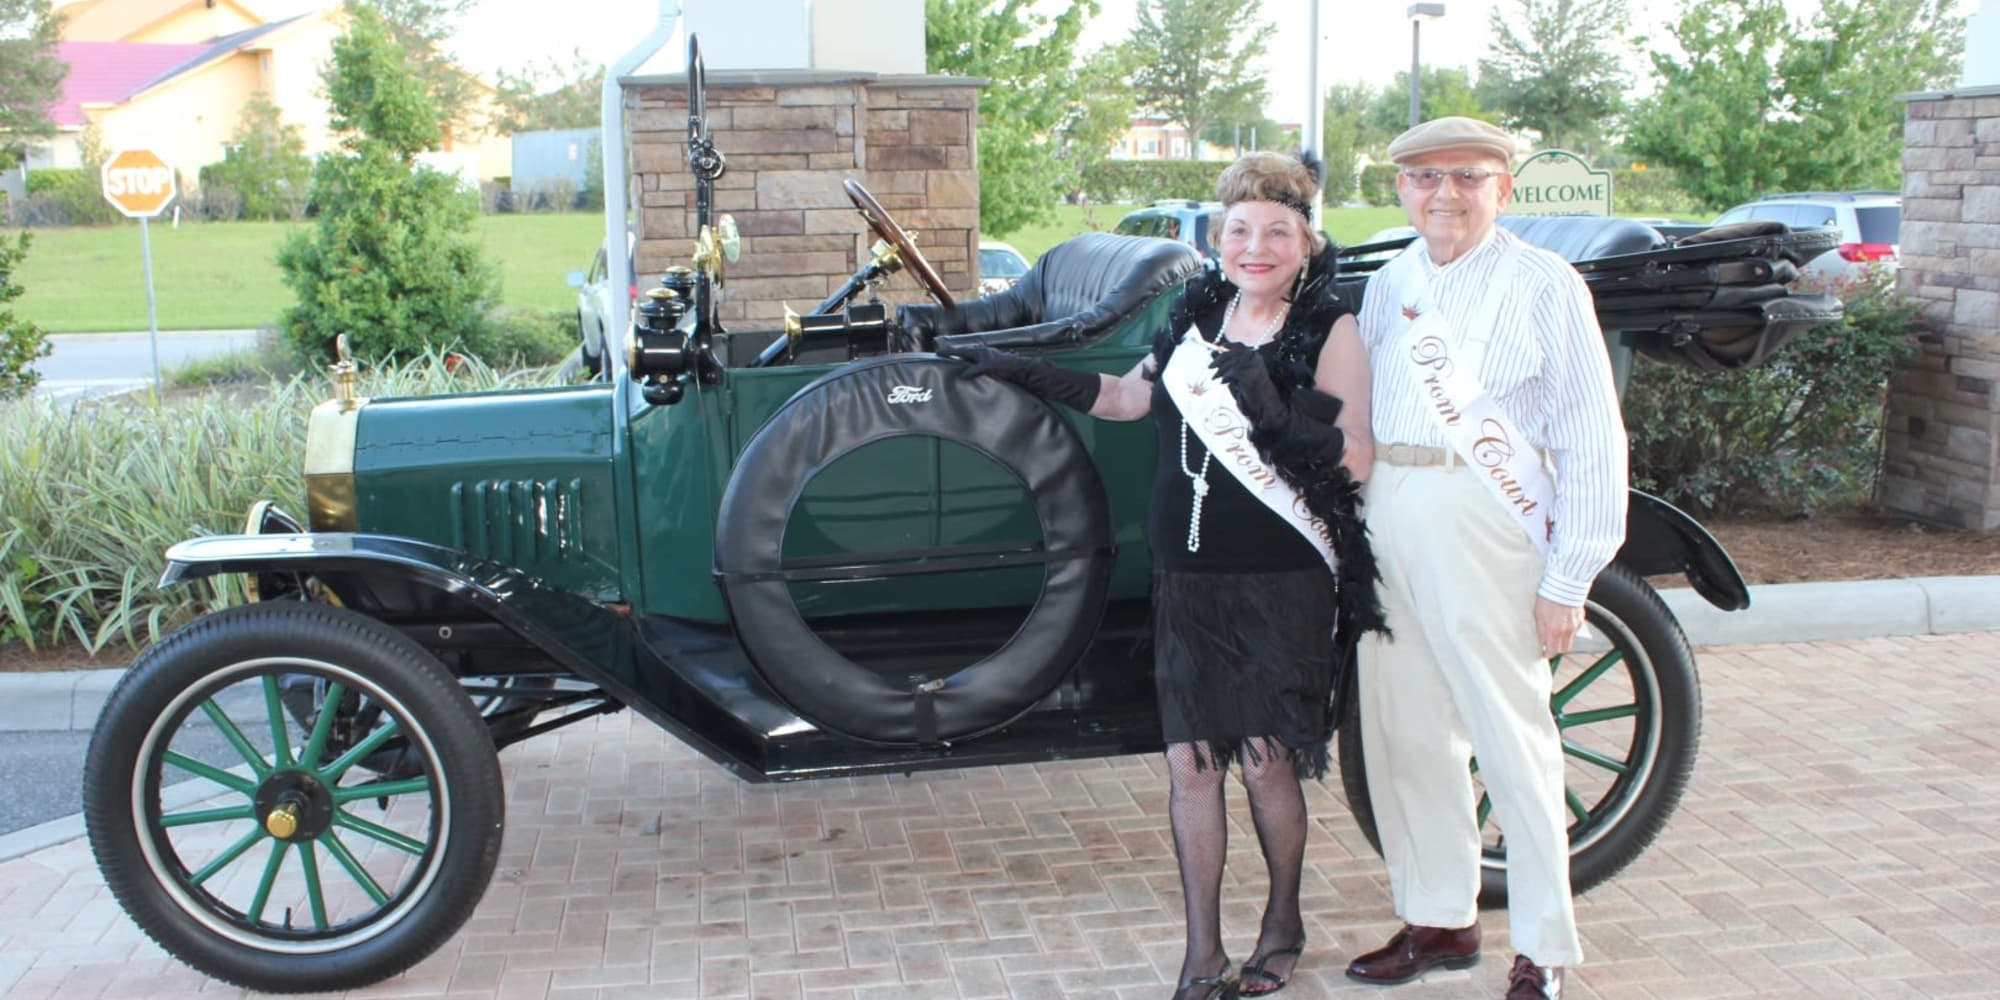 Residents dressed for prom posing in front of a classic car at The Rio Grande Gracious Retirement Living in Rio Rancho, New Mexico